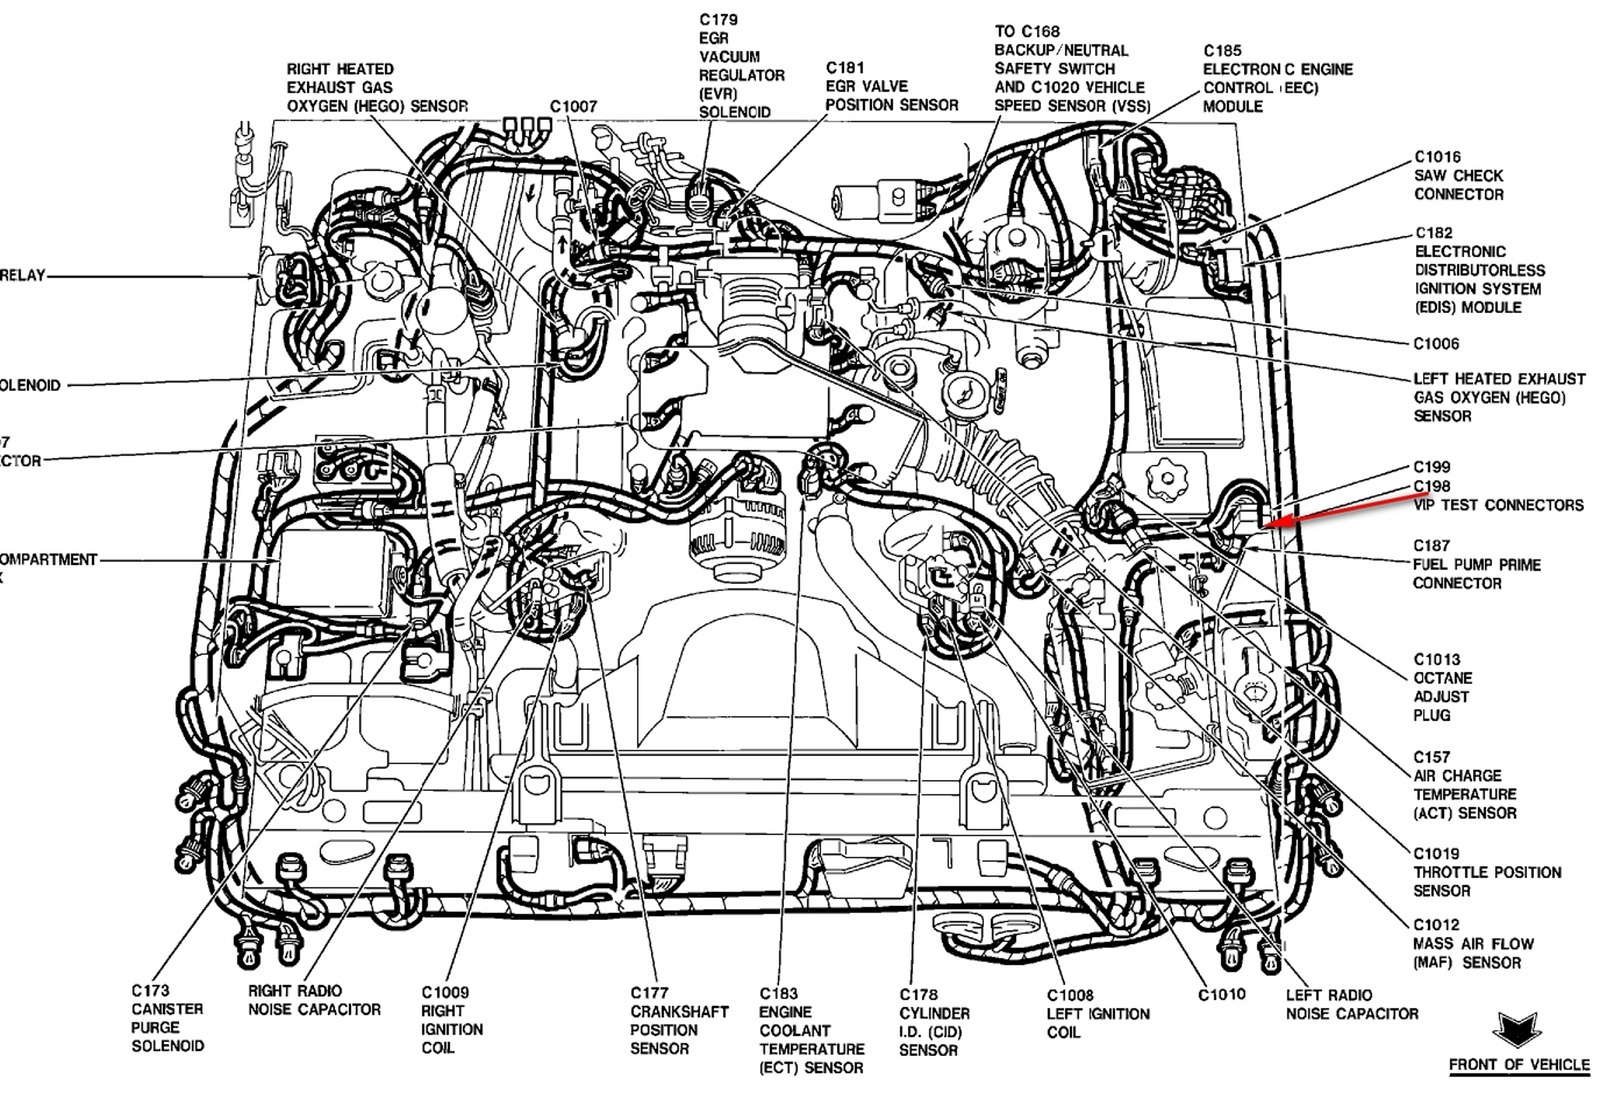 dc577 2001 chevrolet venture wiring diagram free picture wiring resources 2001 chevrolet venture wiring diagram